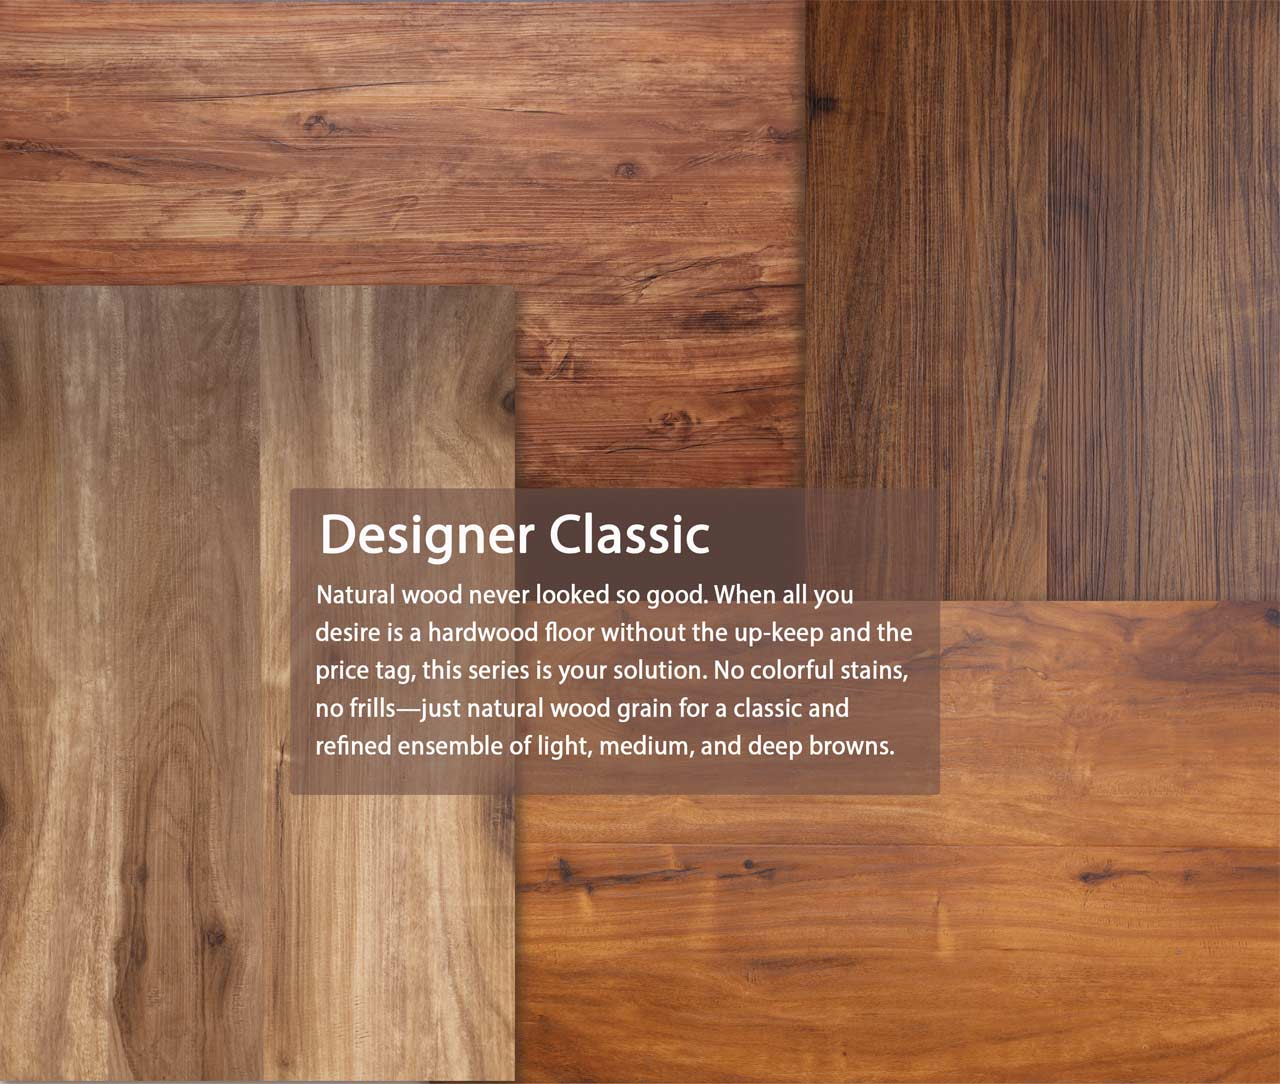 Design-Classic-Website-Z